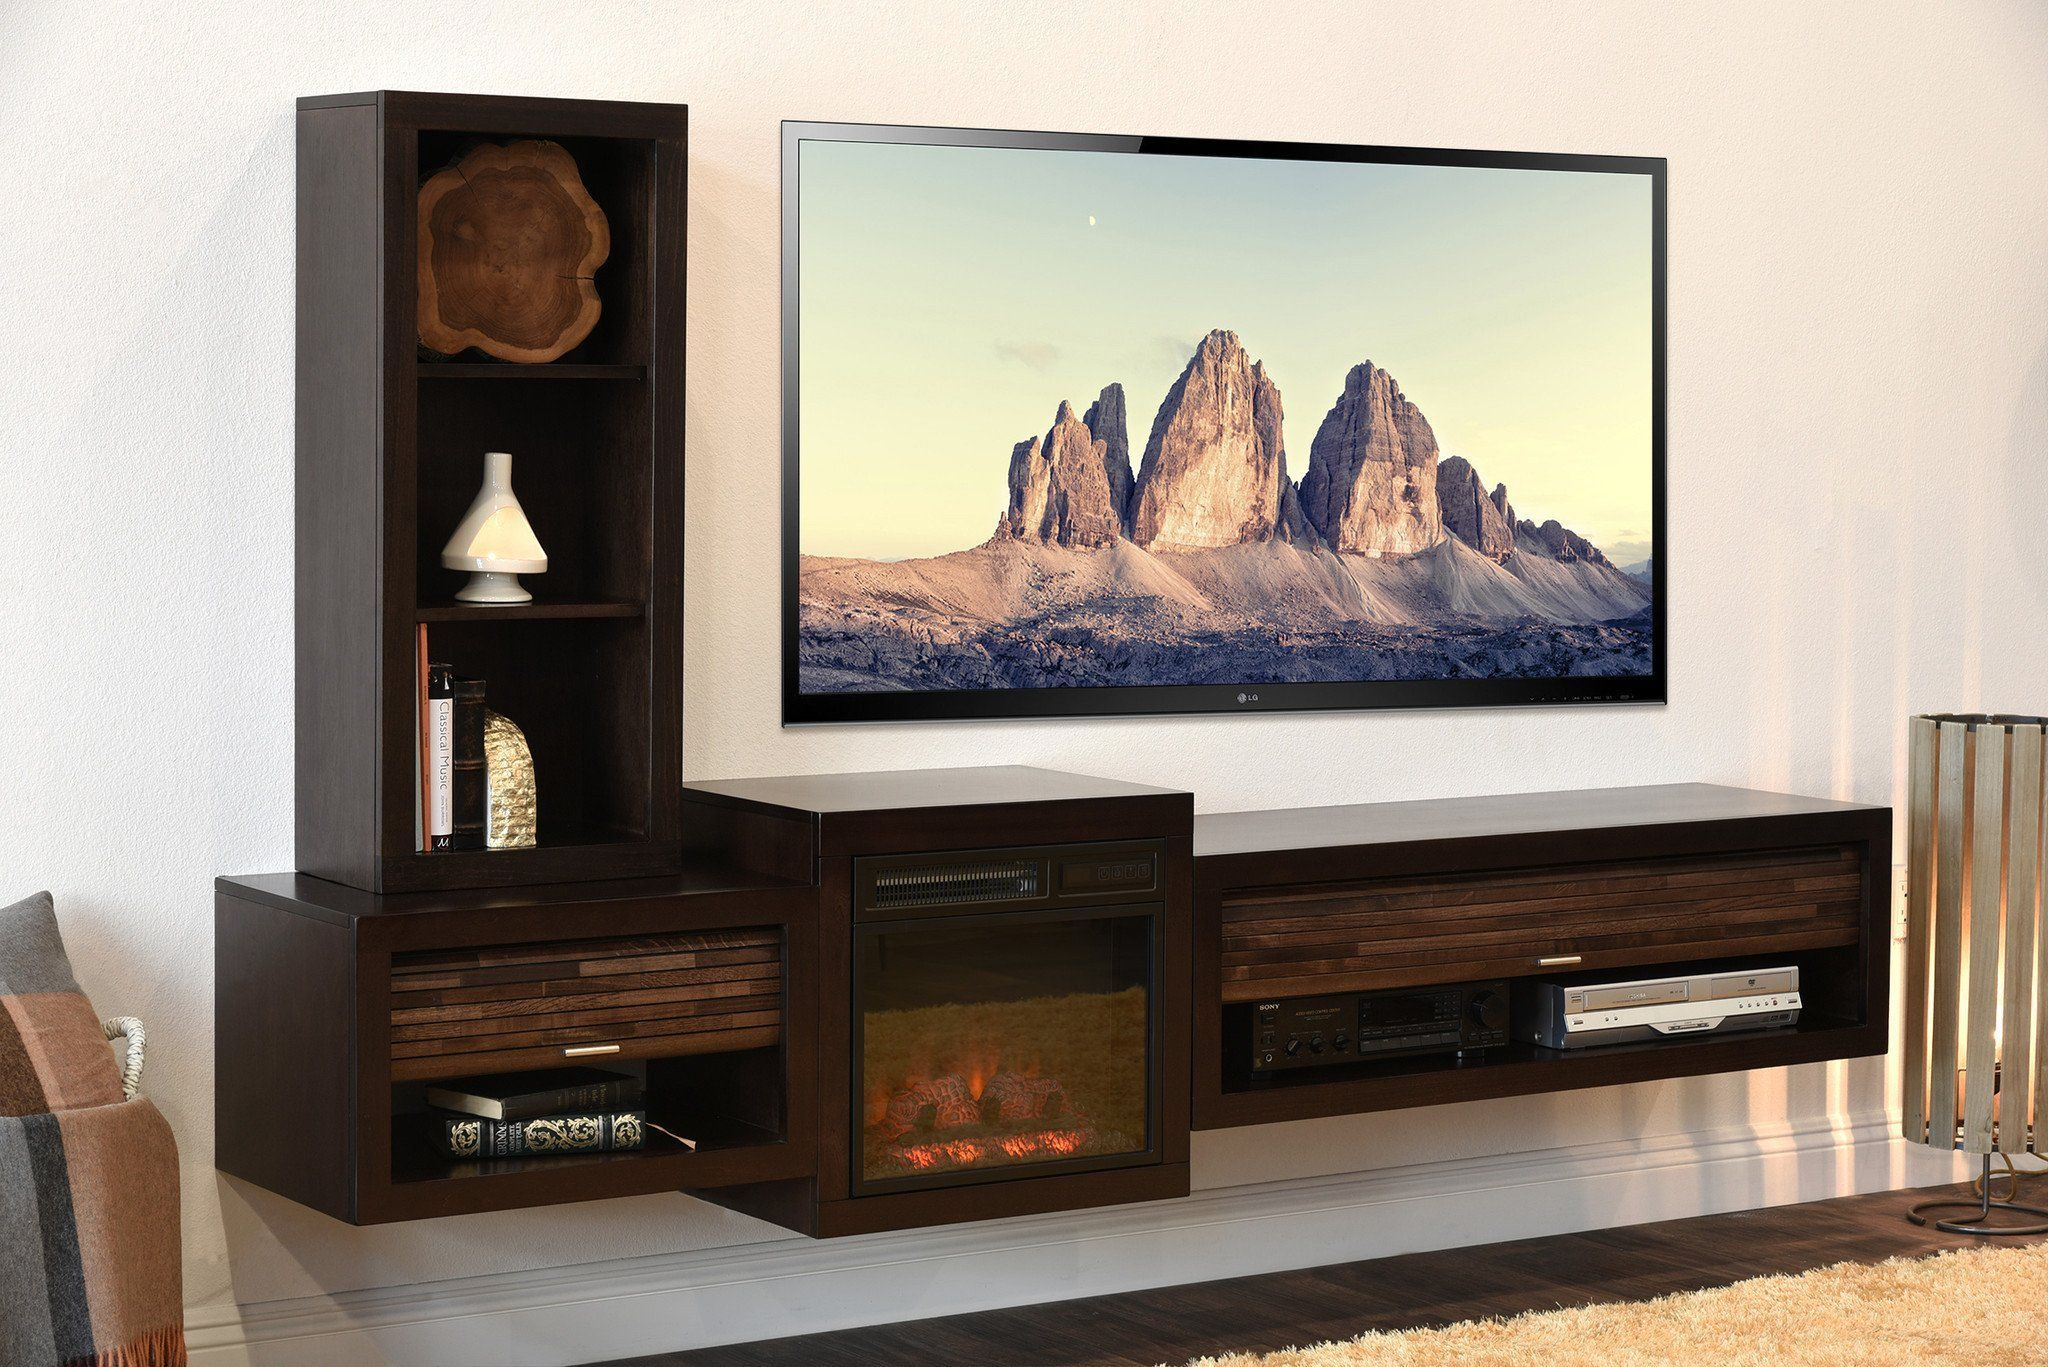 Floating Tv Stand With Fireplace Eco Geo Espresso Woodwaves Livingroomideas Floating Tv Stand Fireplace Tv Stand Diy Tv Stand